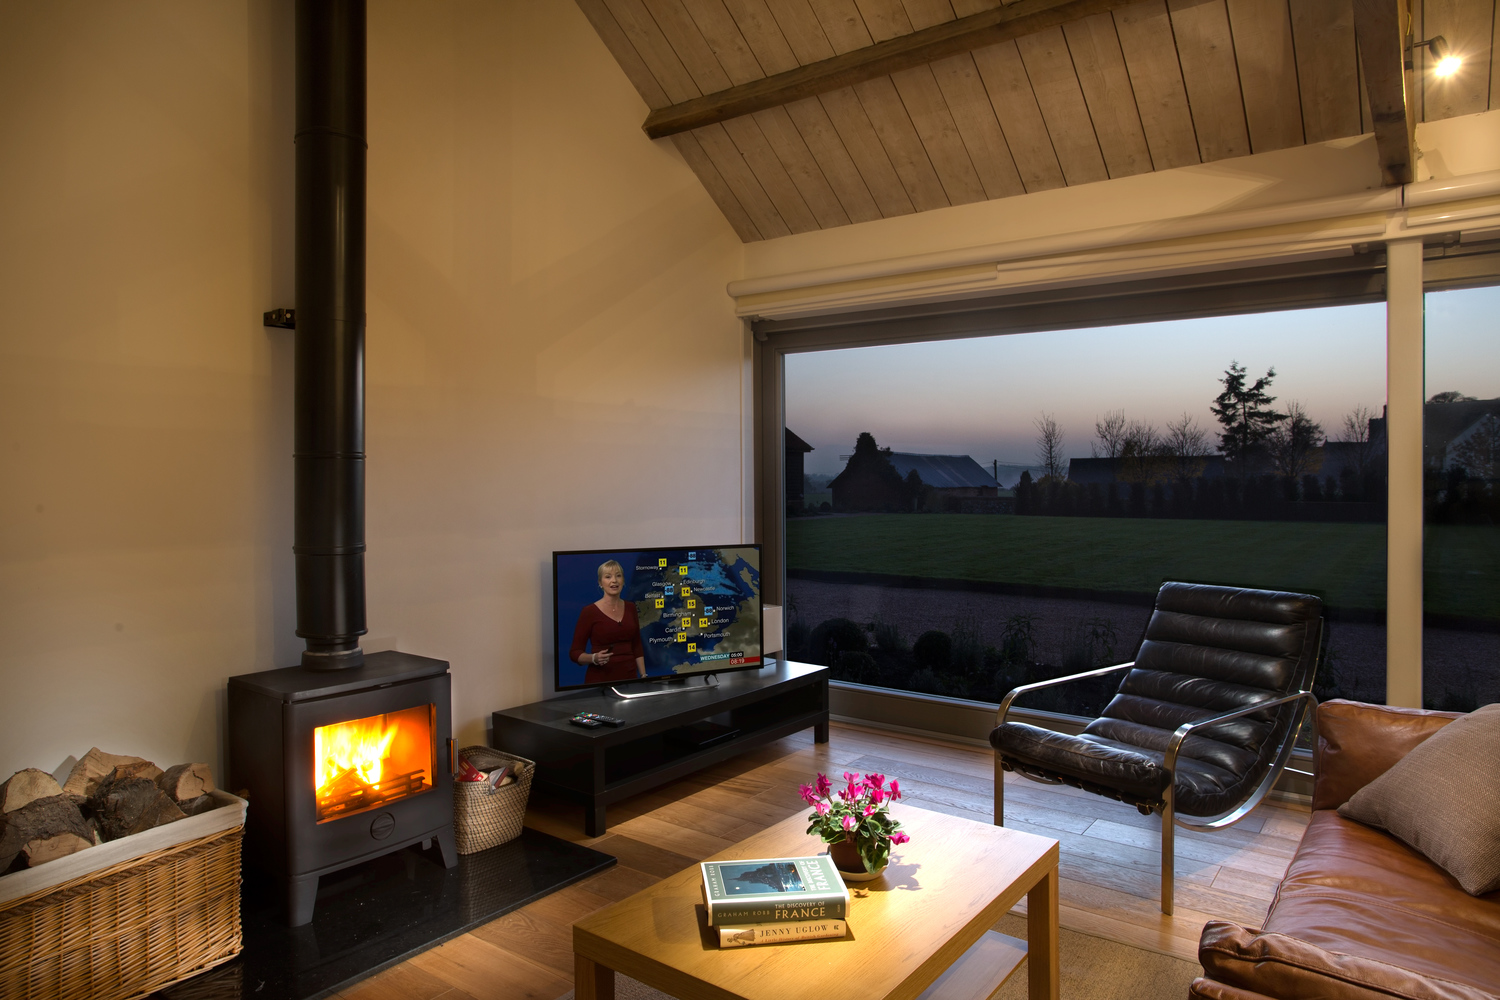 The Vineyard - Lordship's Barns - living room fireplace